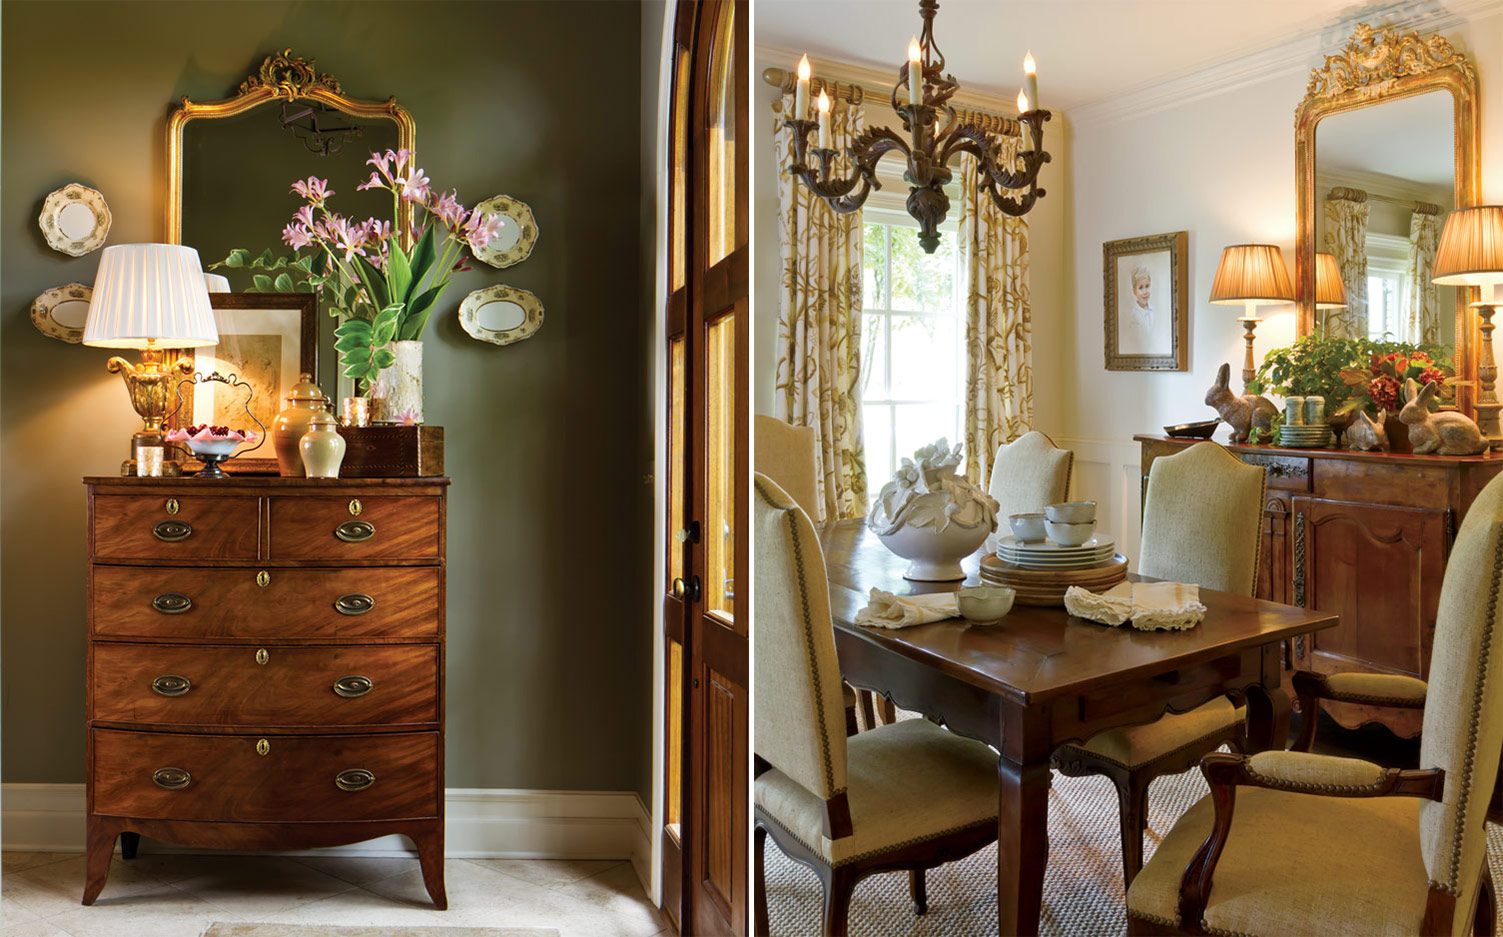 Designer sally may on the classical southern home for Decorating a house